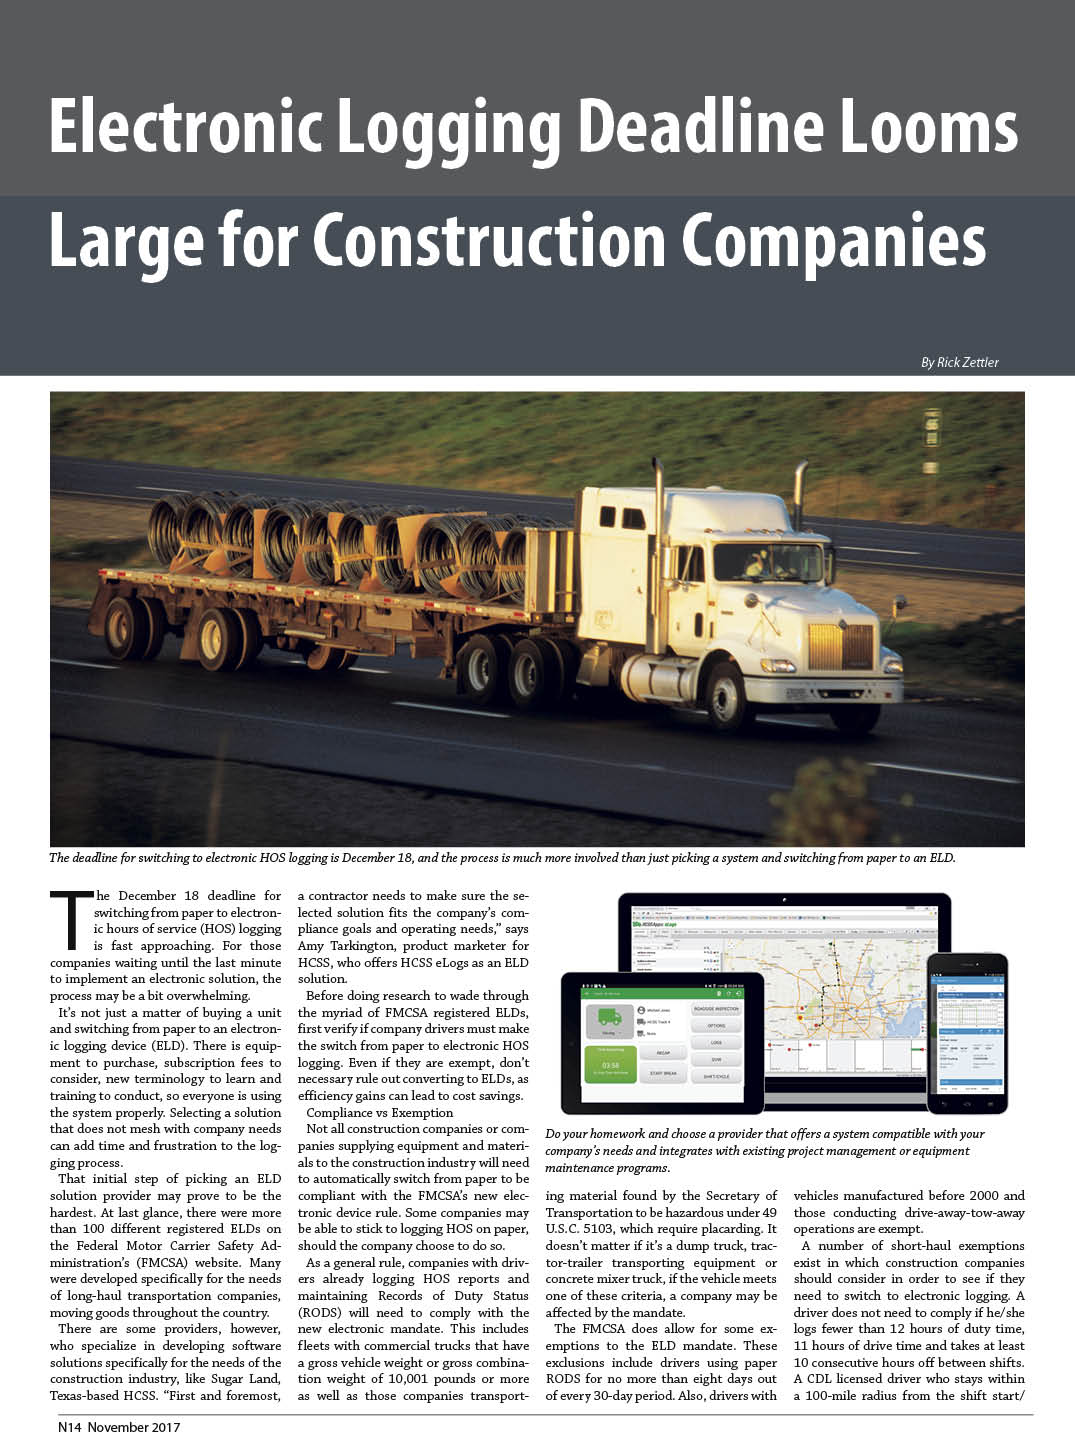 Electronic Logging Deadline Looms Large for Construction